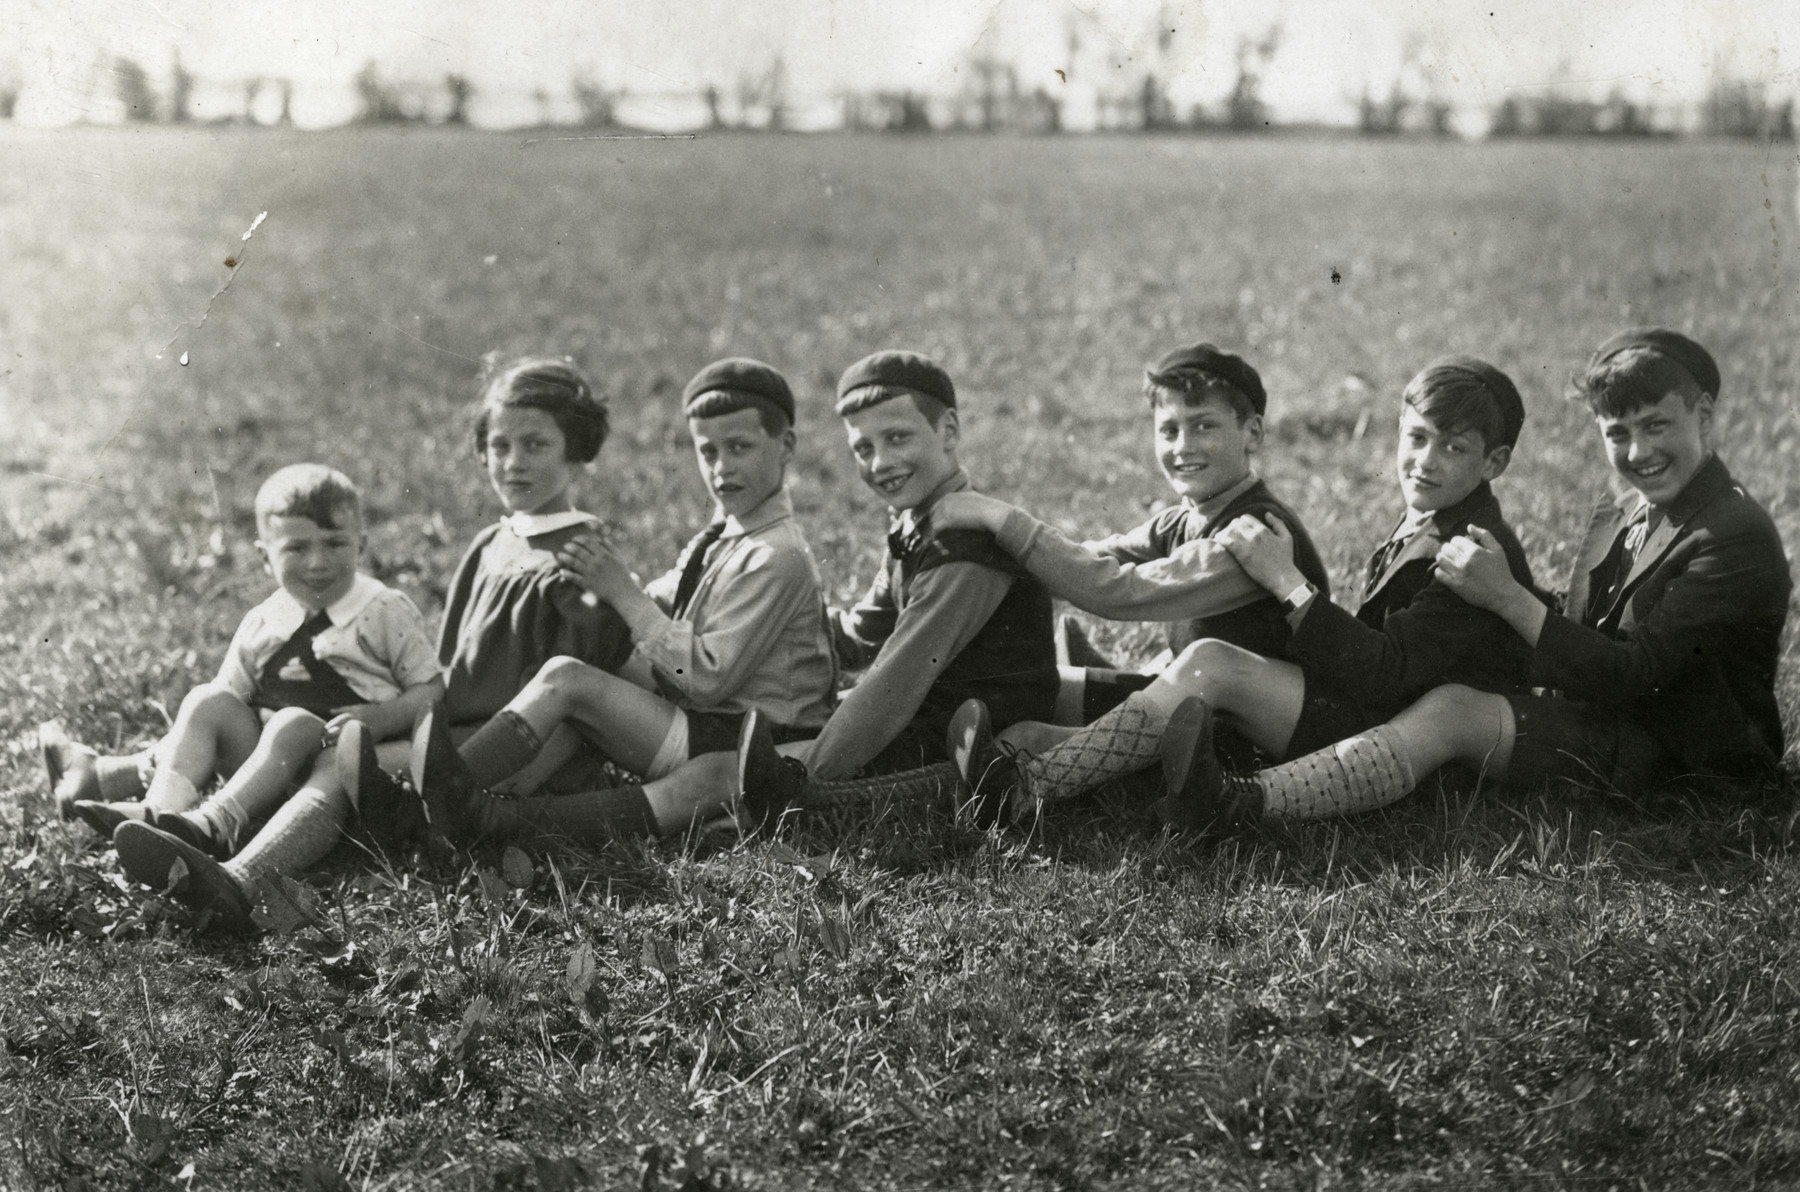 The Emanuel children go on an excursion near Rotterdam on Lag Ba'Omer.  From right to left: Elchanan, Shlomo, Yona, Shmuel, Baruch, Bella, and Shalom.